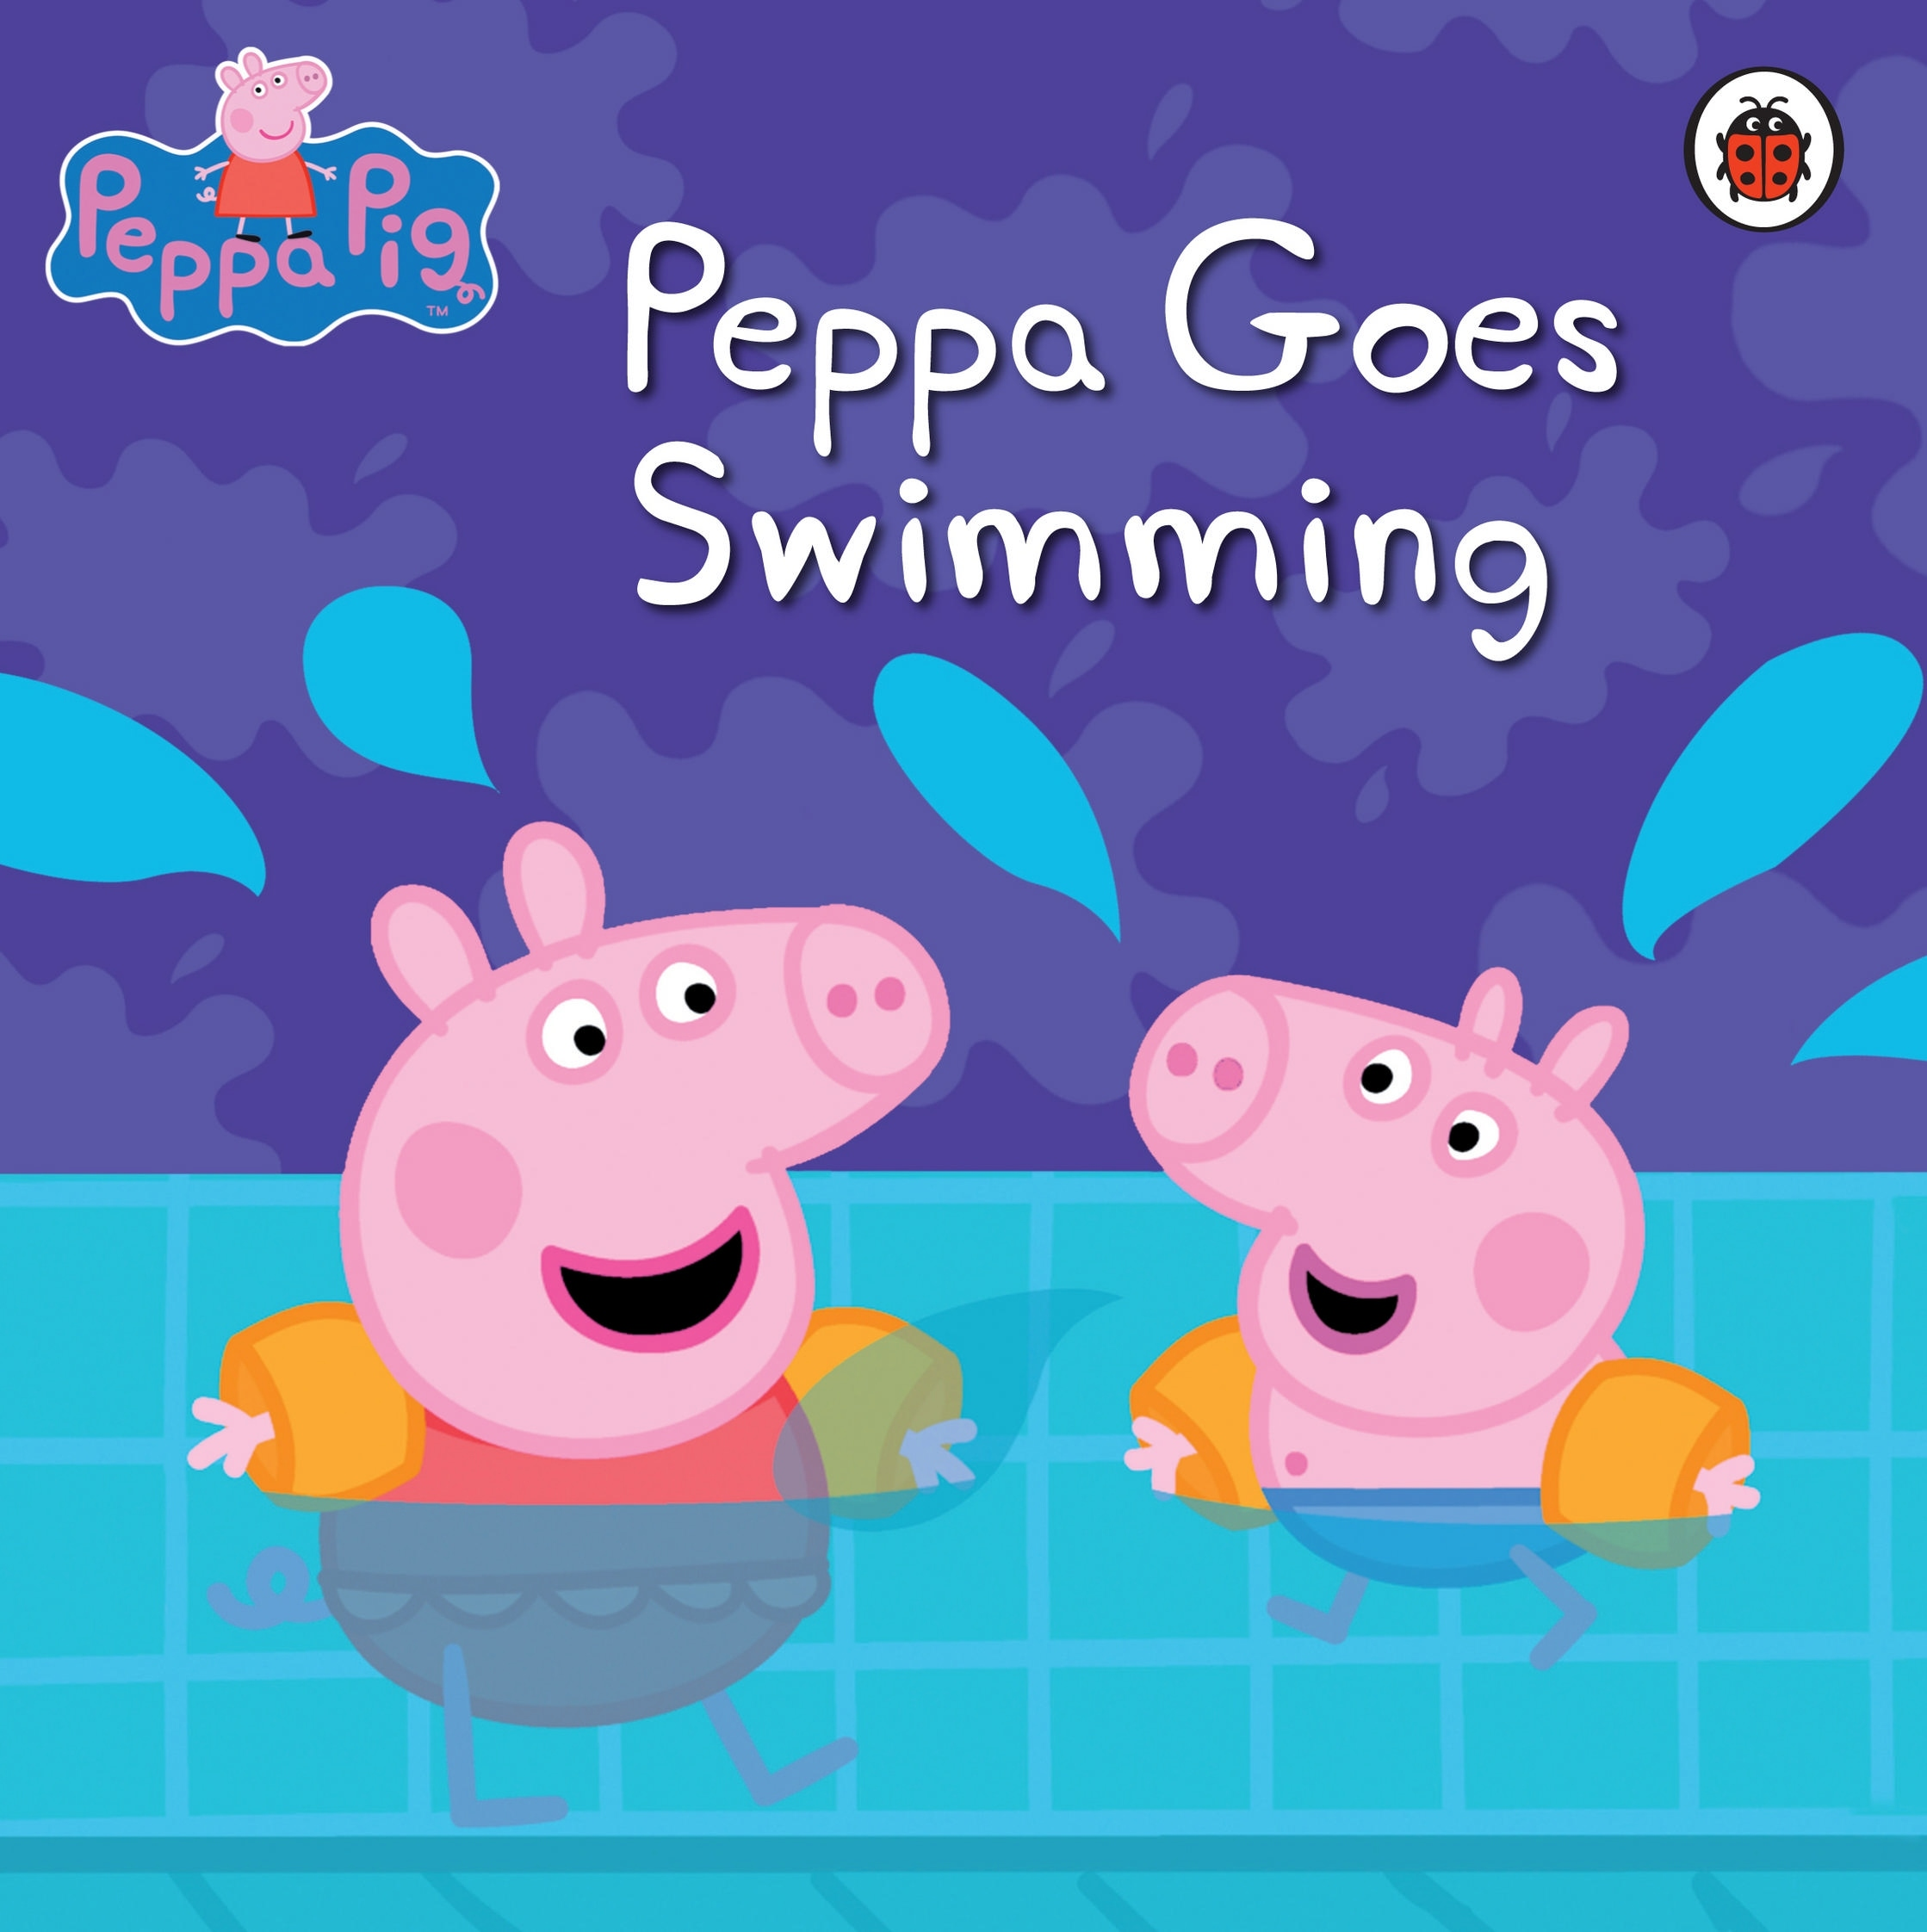 Peppa Pig Goes Swimming